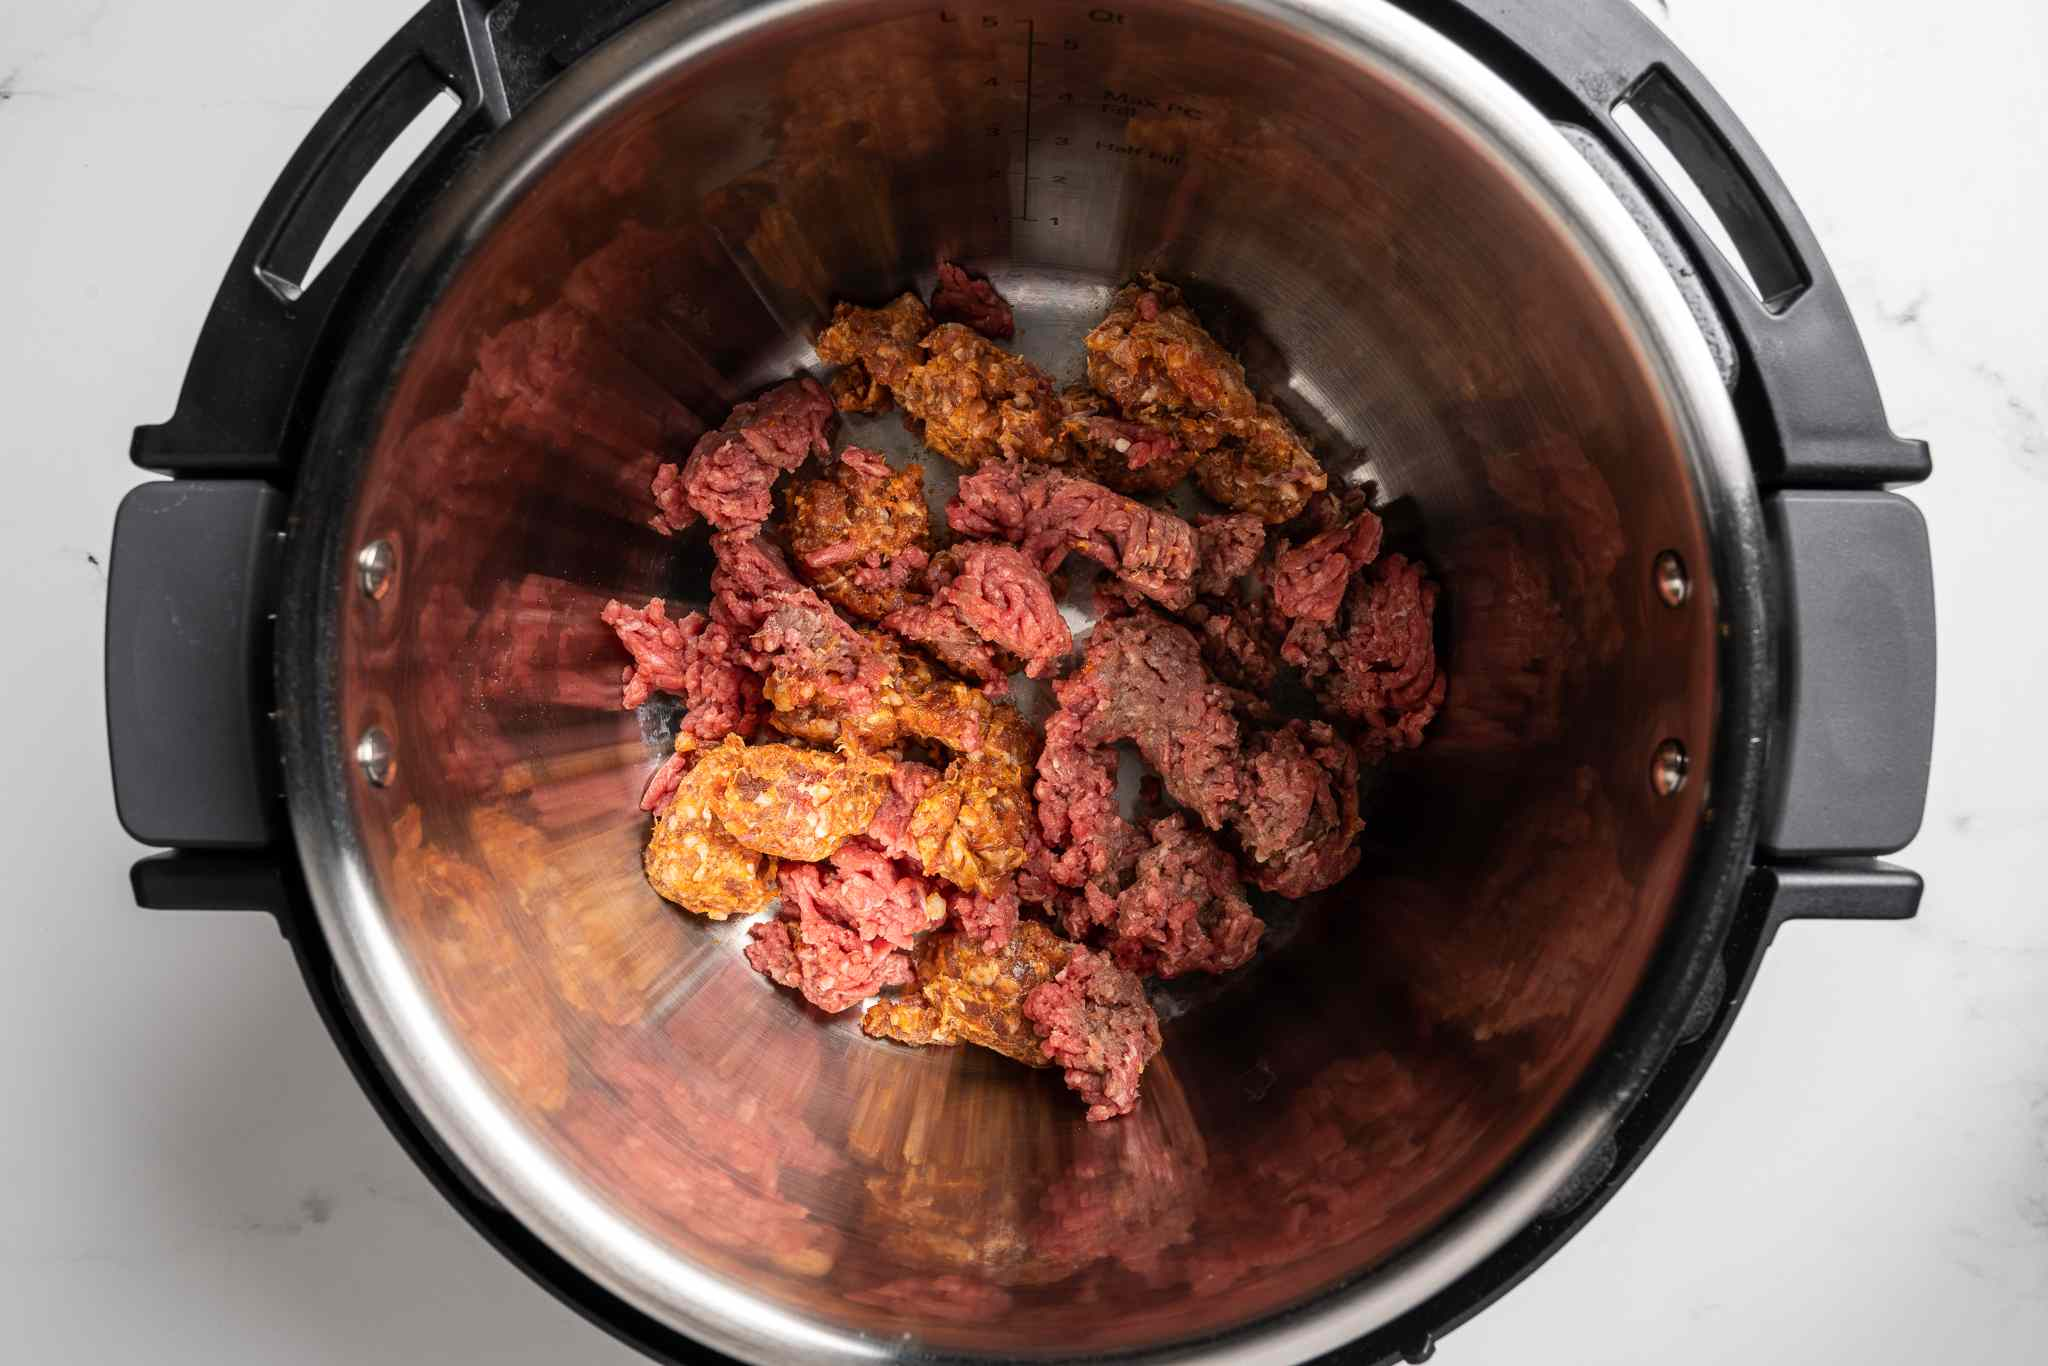 beef and sausage cooking in a pressure cooker